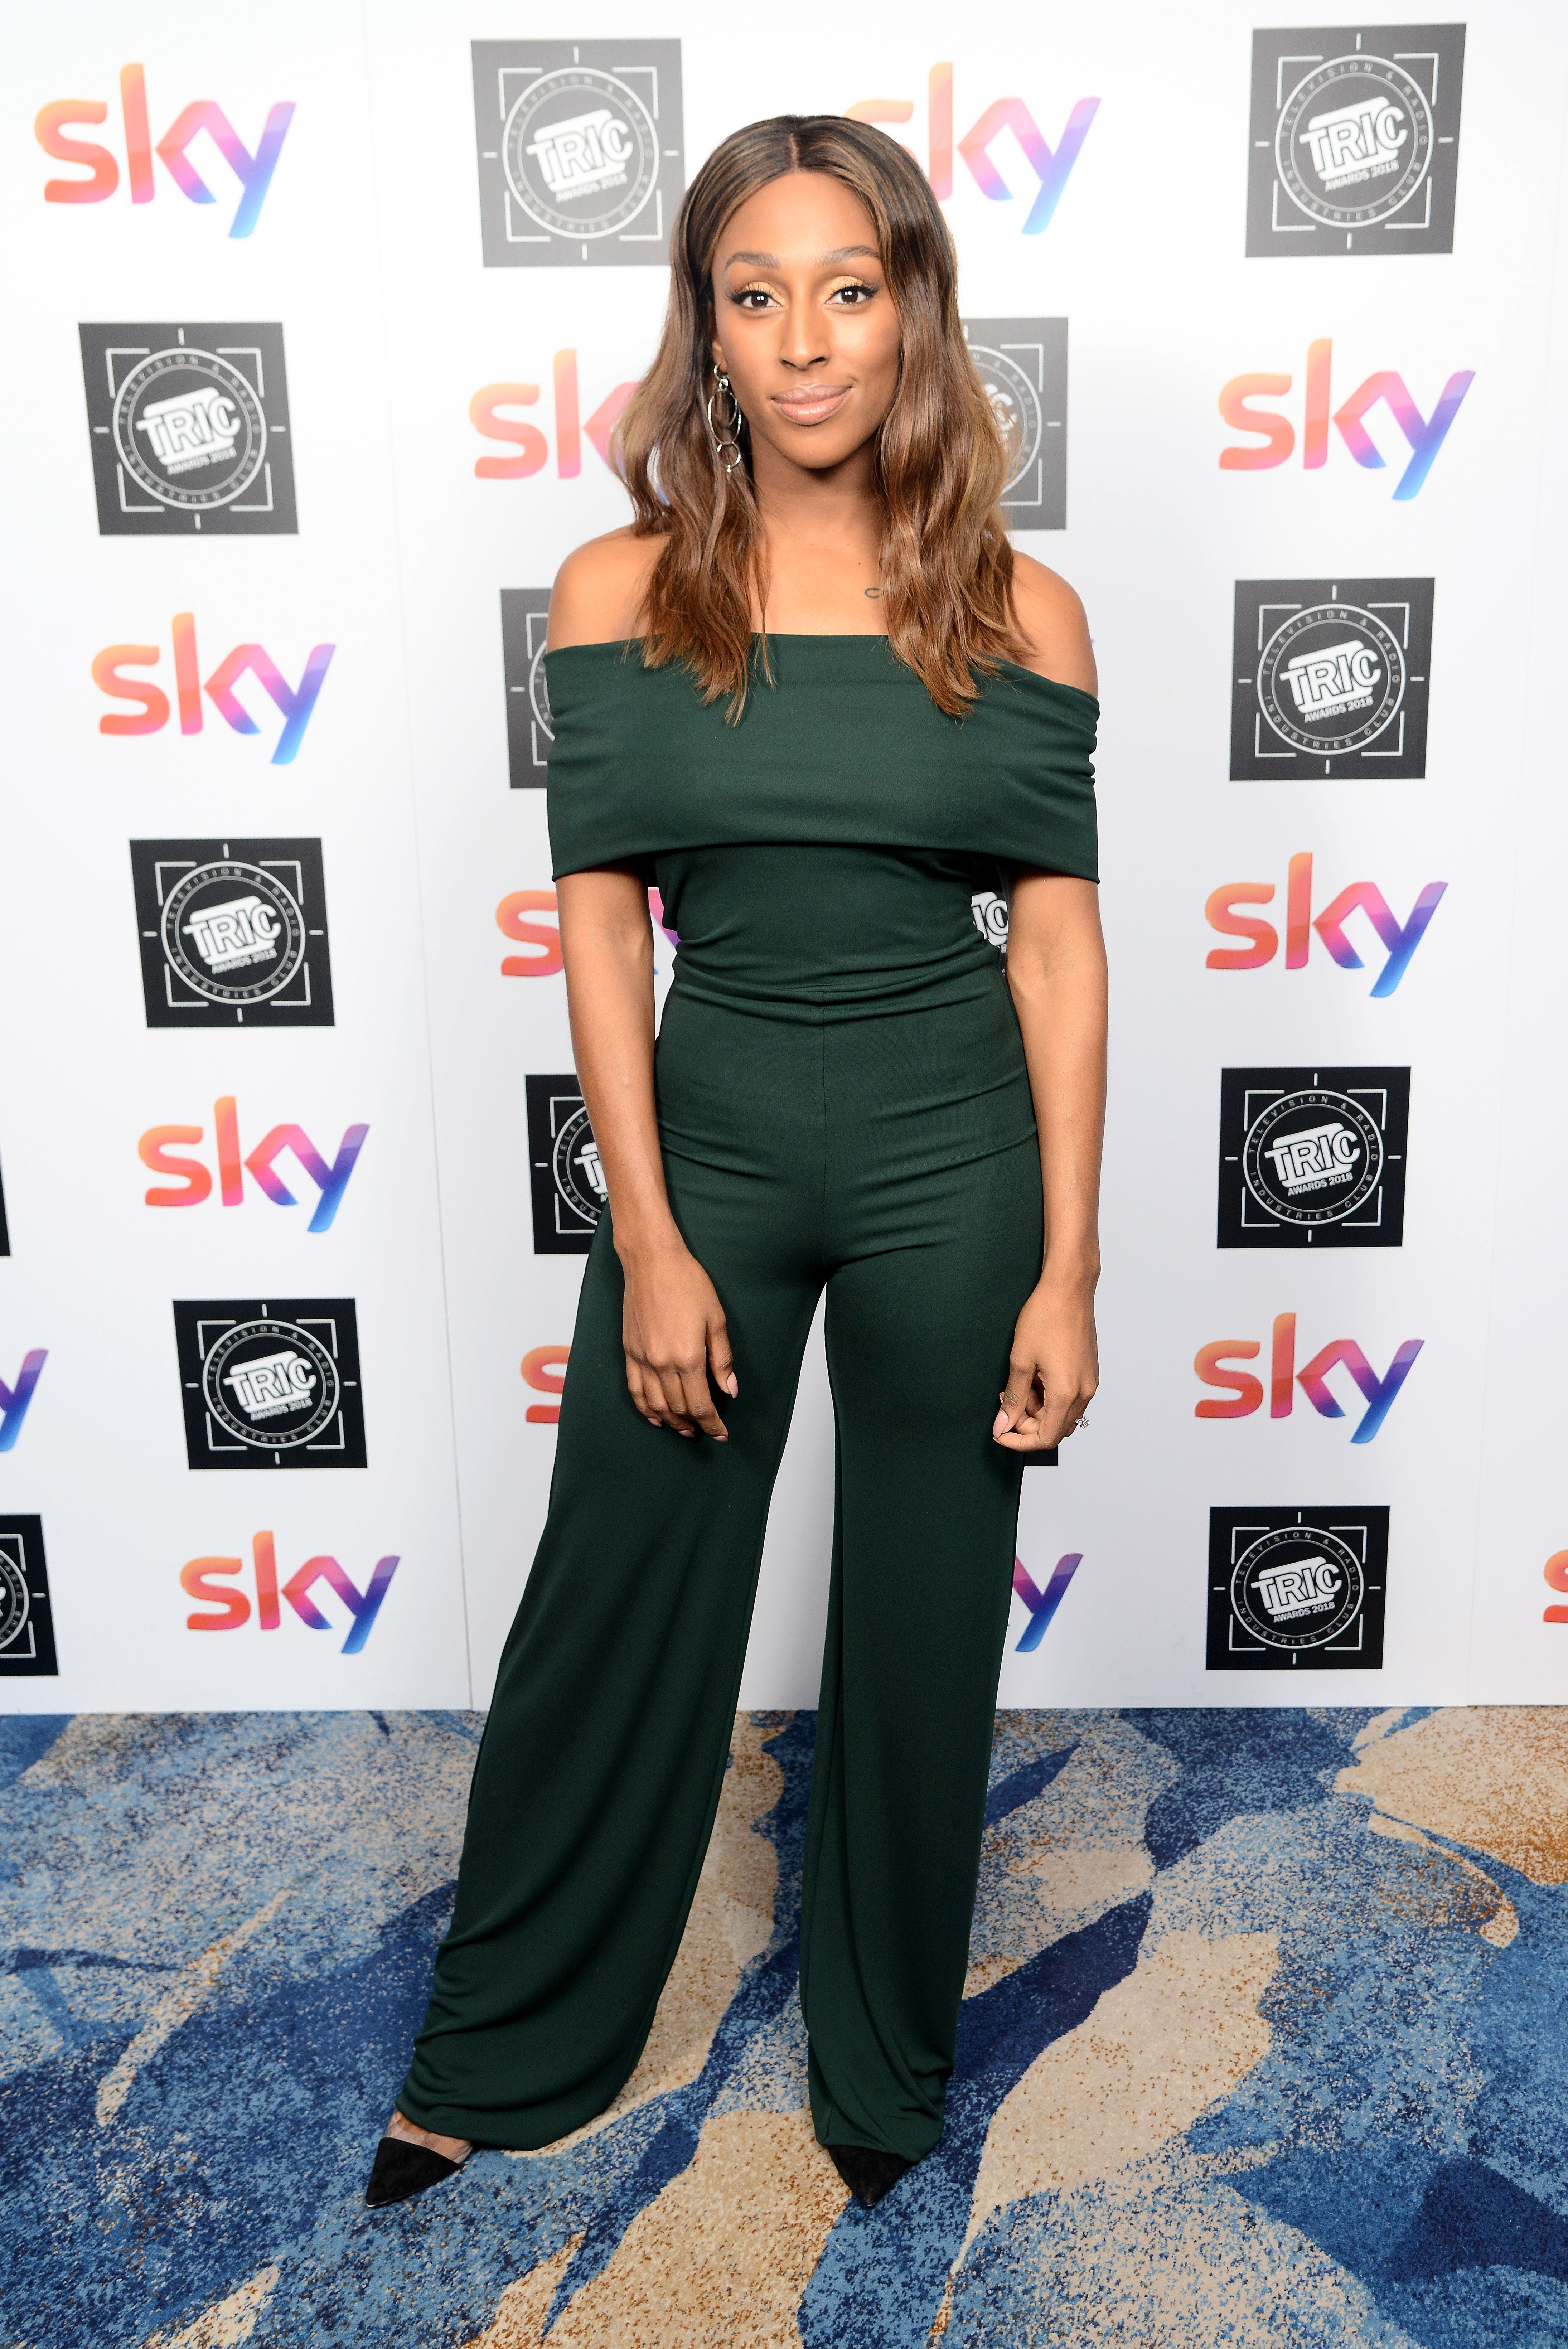 'Strictly' Star Alexandra Burke Says UK Has 'Massive Problem' With 'Confident